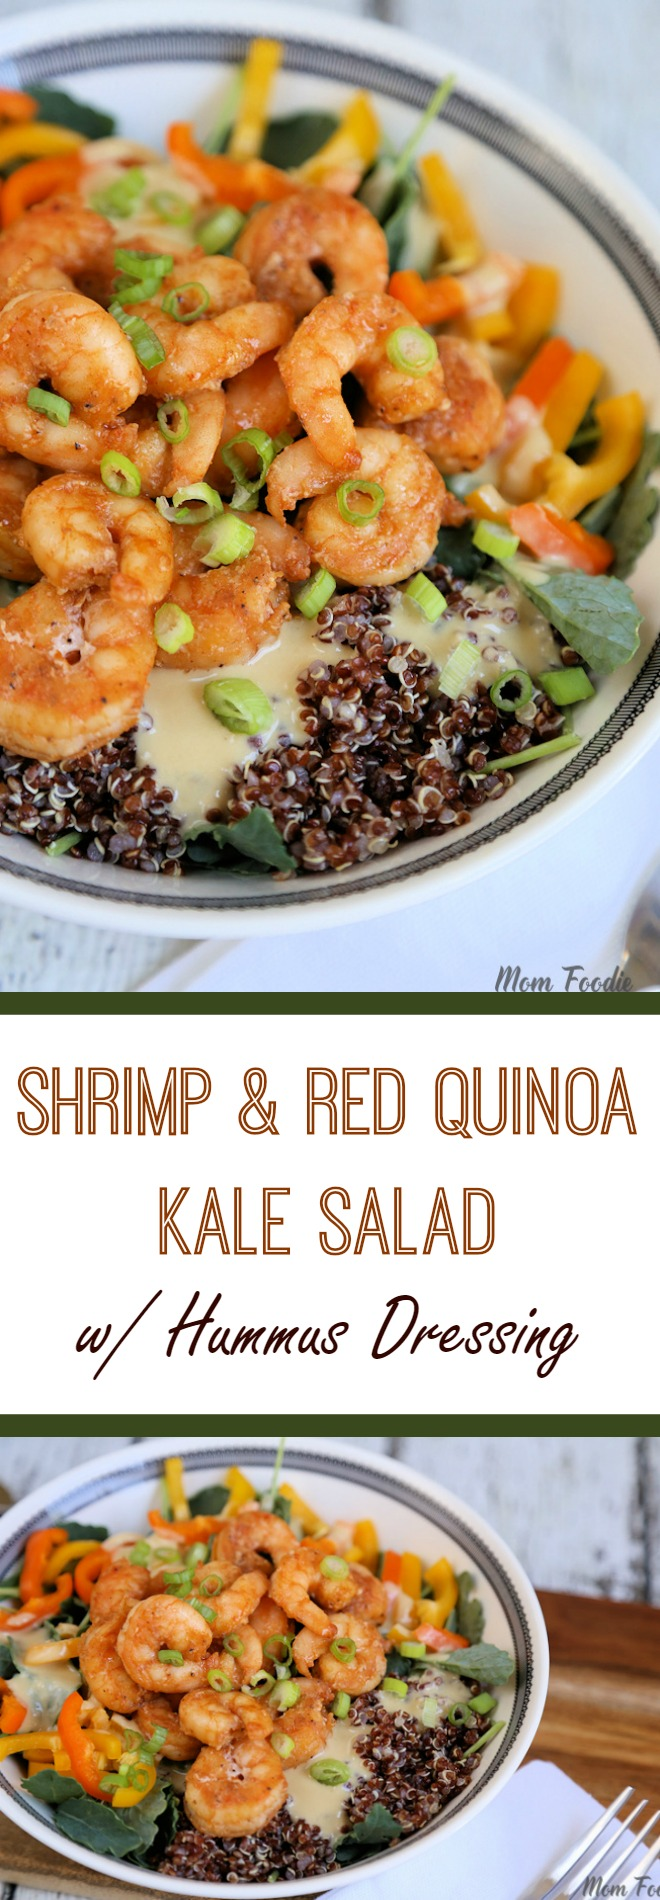 shrimp & Red Quinoa Salad